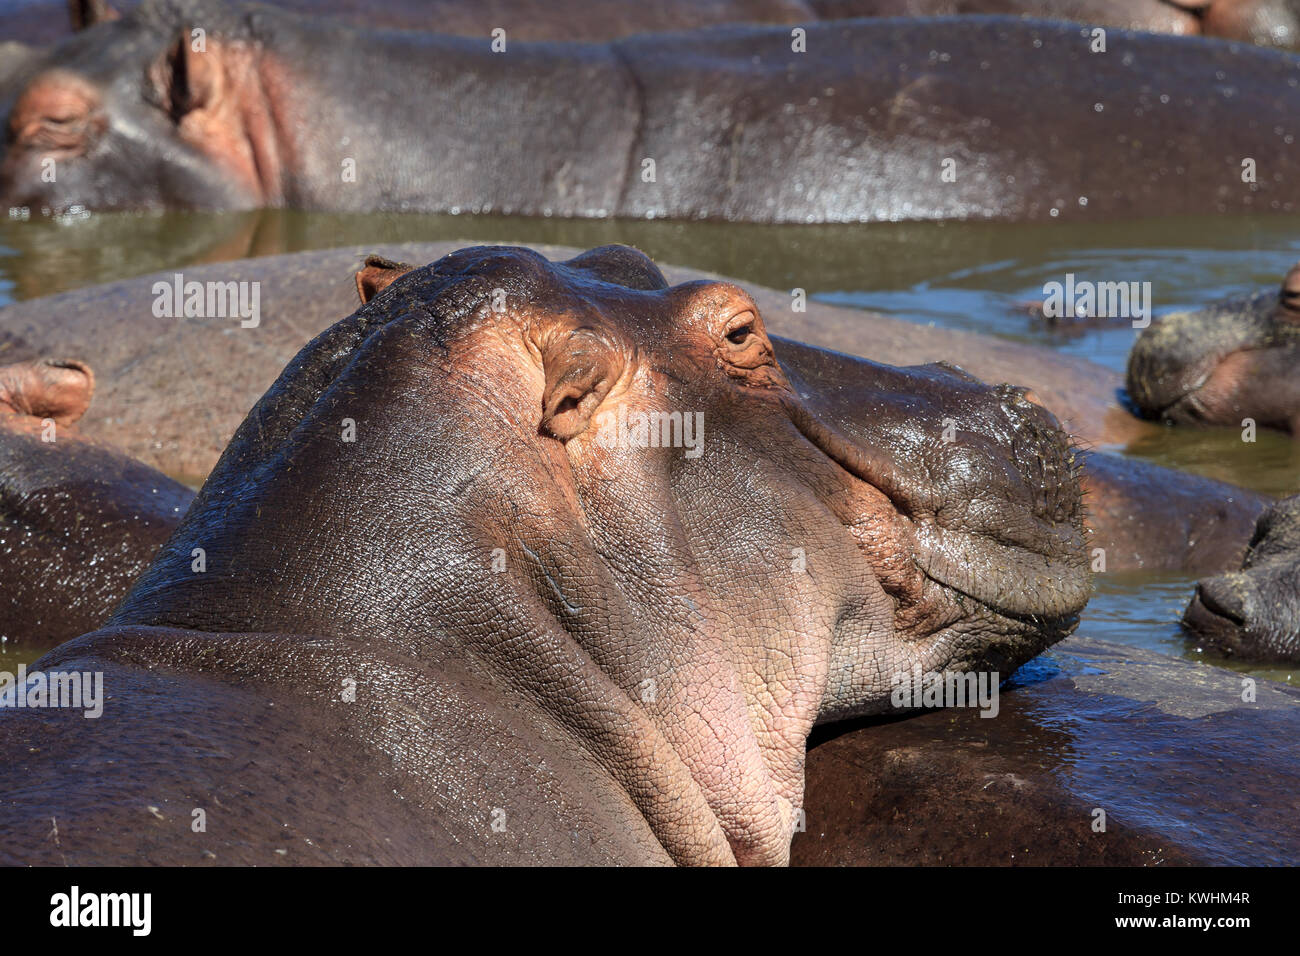 The common hippopotamus, or hippo, is a large, mostly herbivorous, semiaquatic mammal native to sub-Saharan Africa - Stock Image